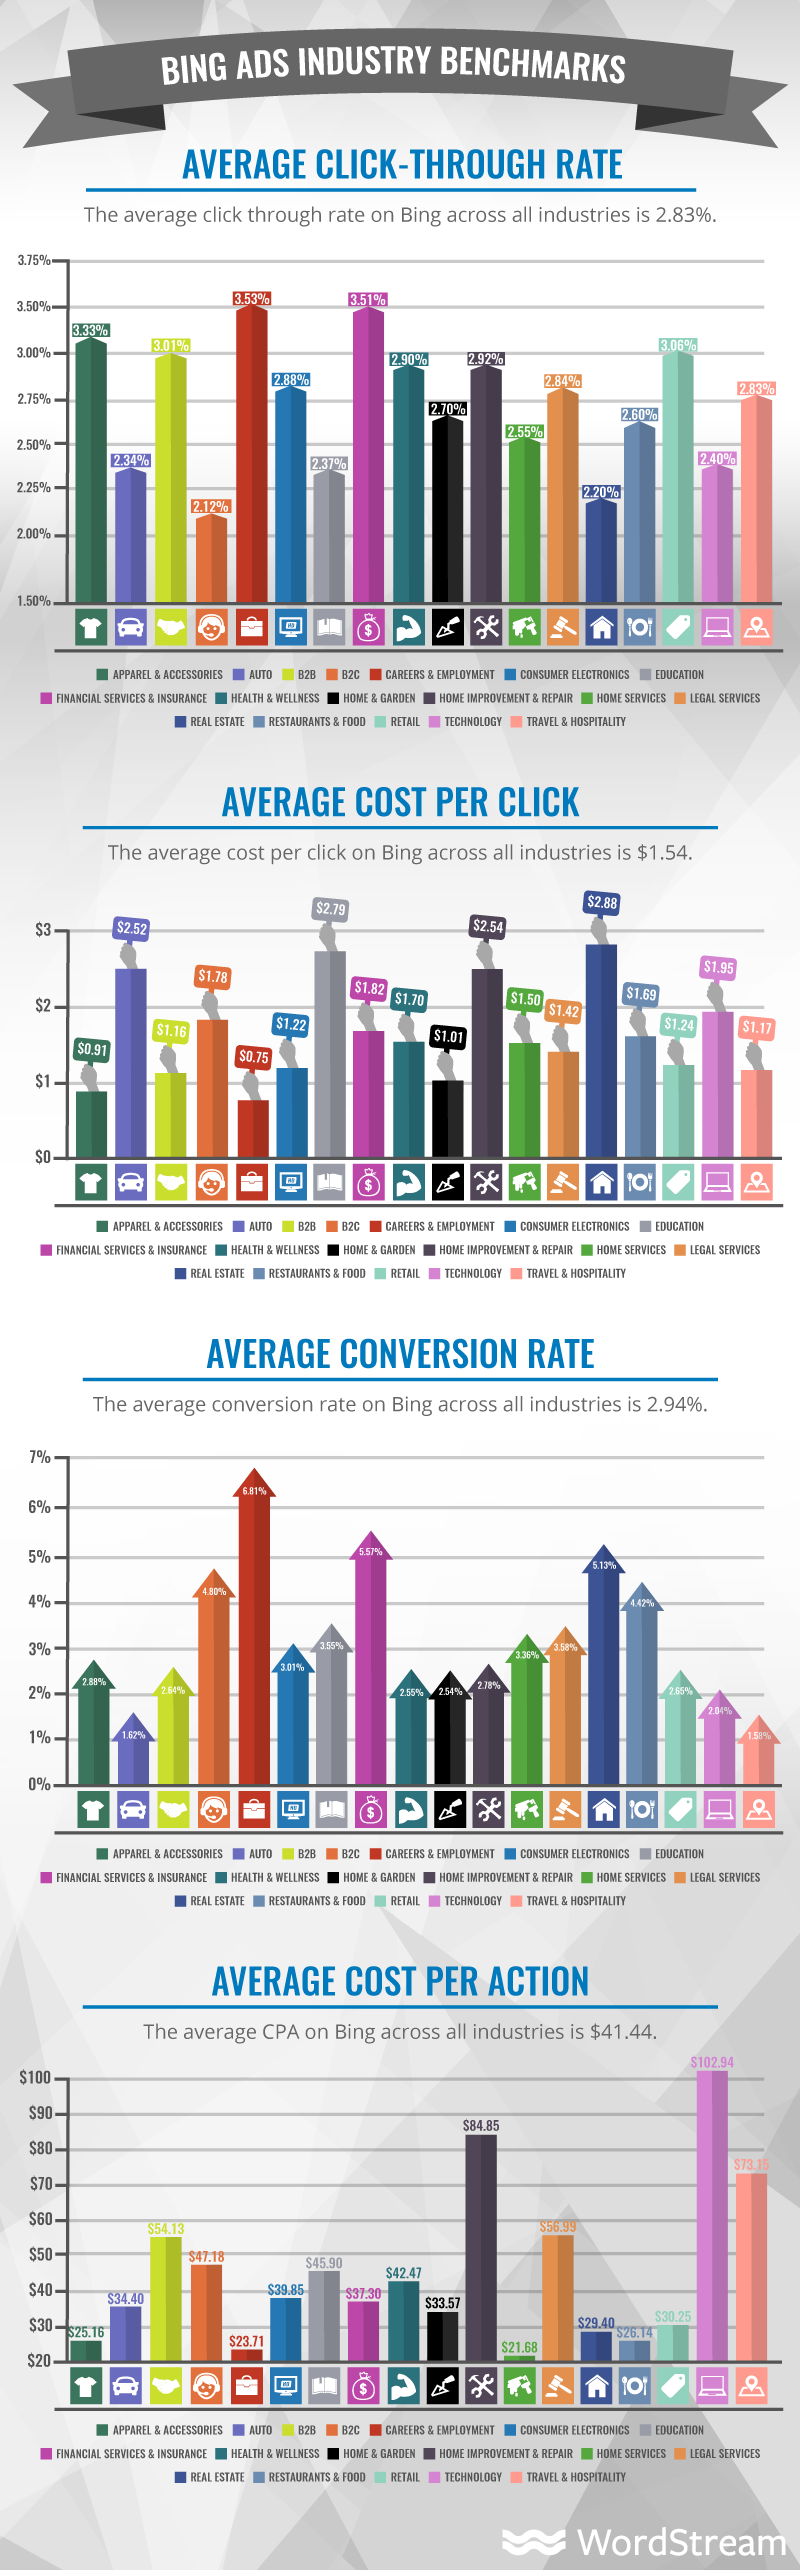 benchmarks for bing advertising